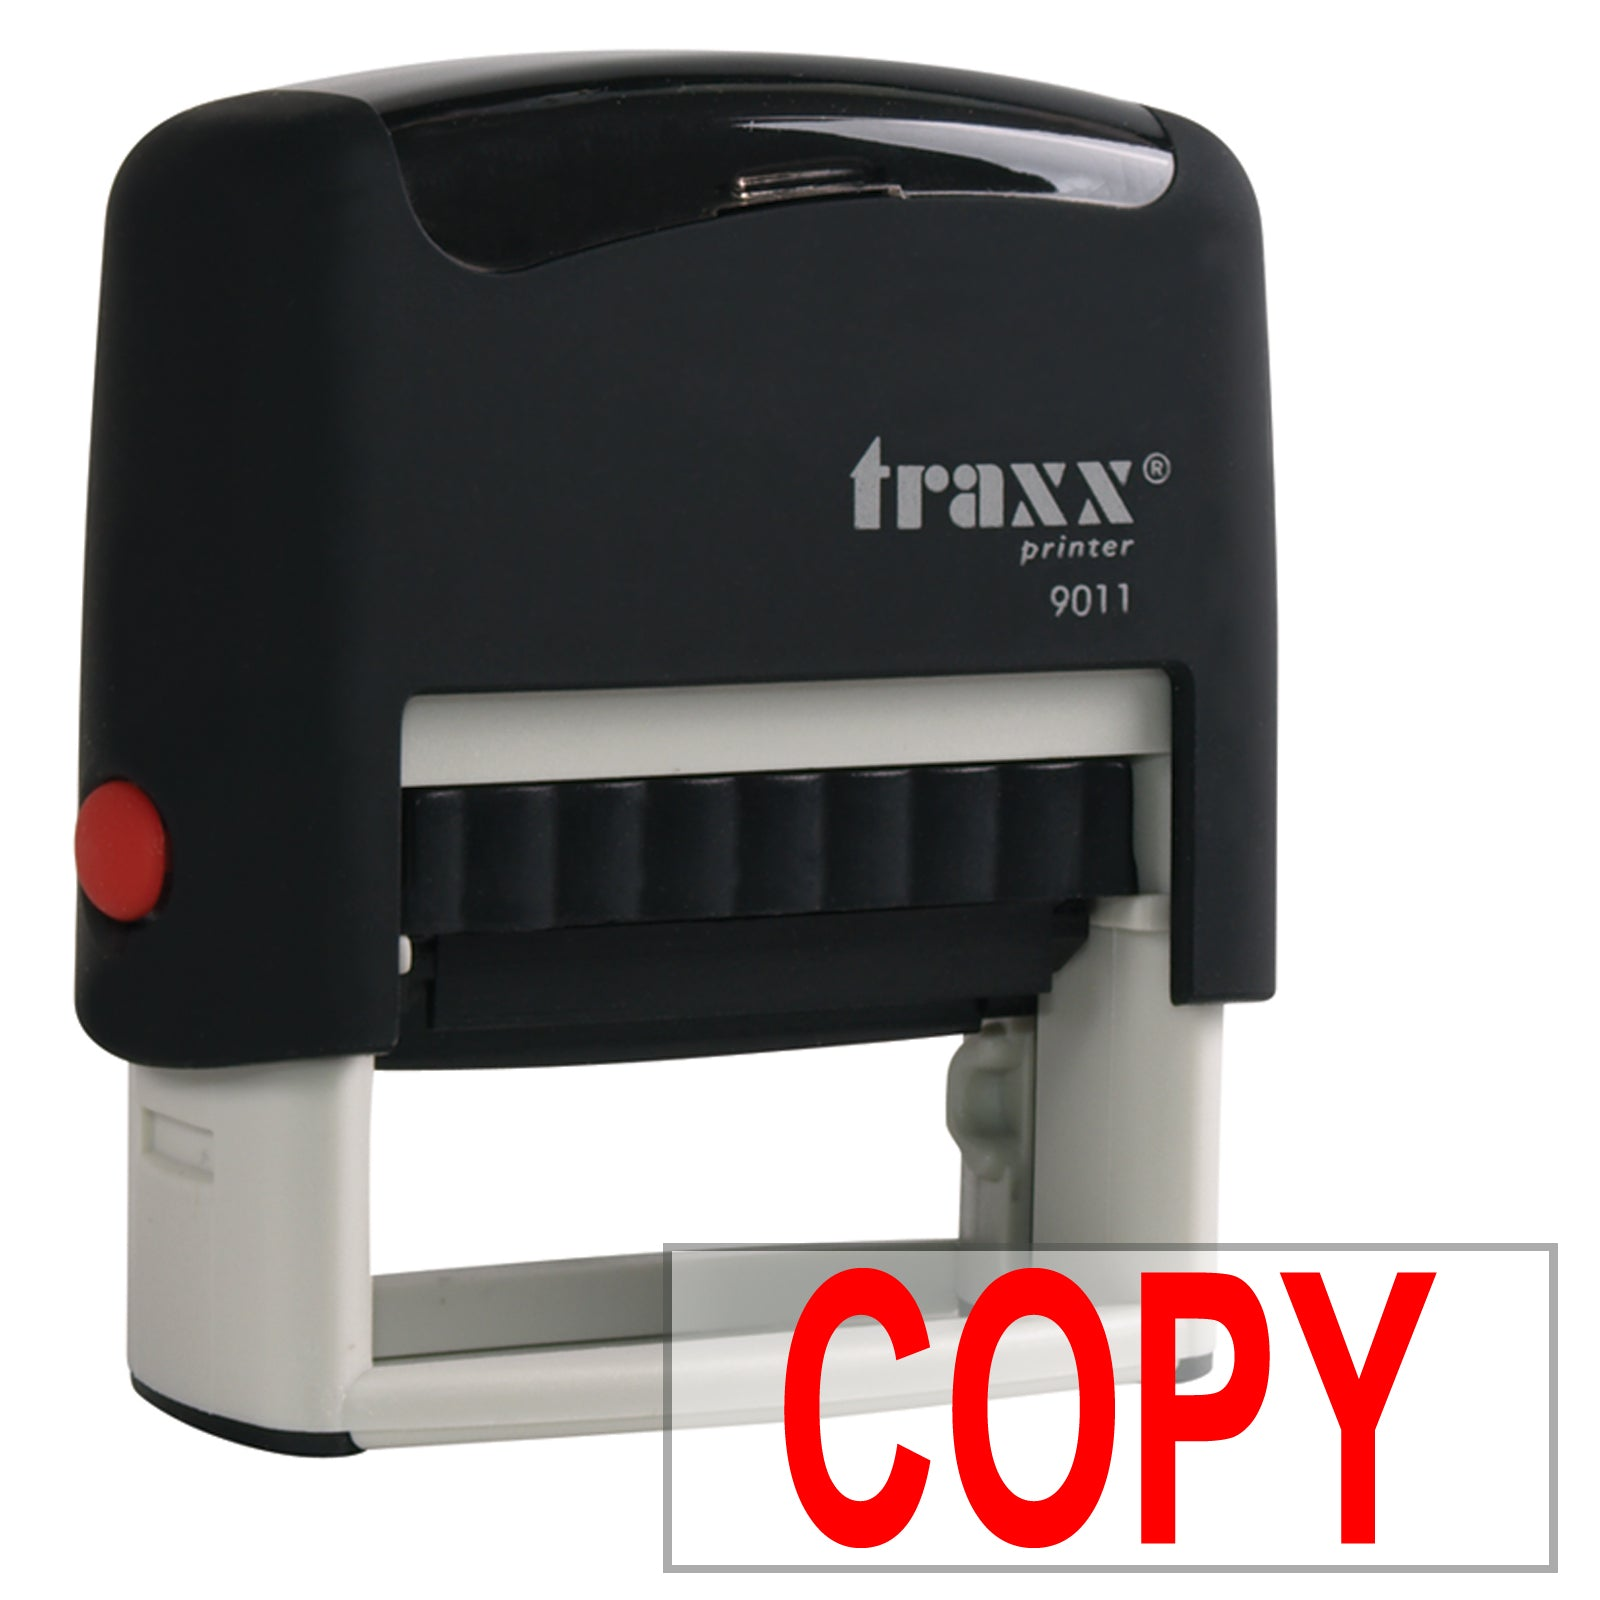 Traxx 9011 38 x 14mm Word Stamp - COPY